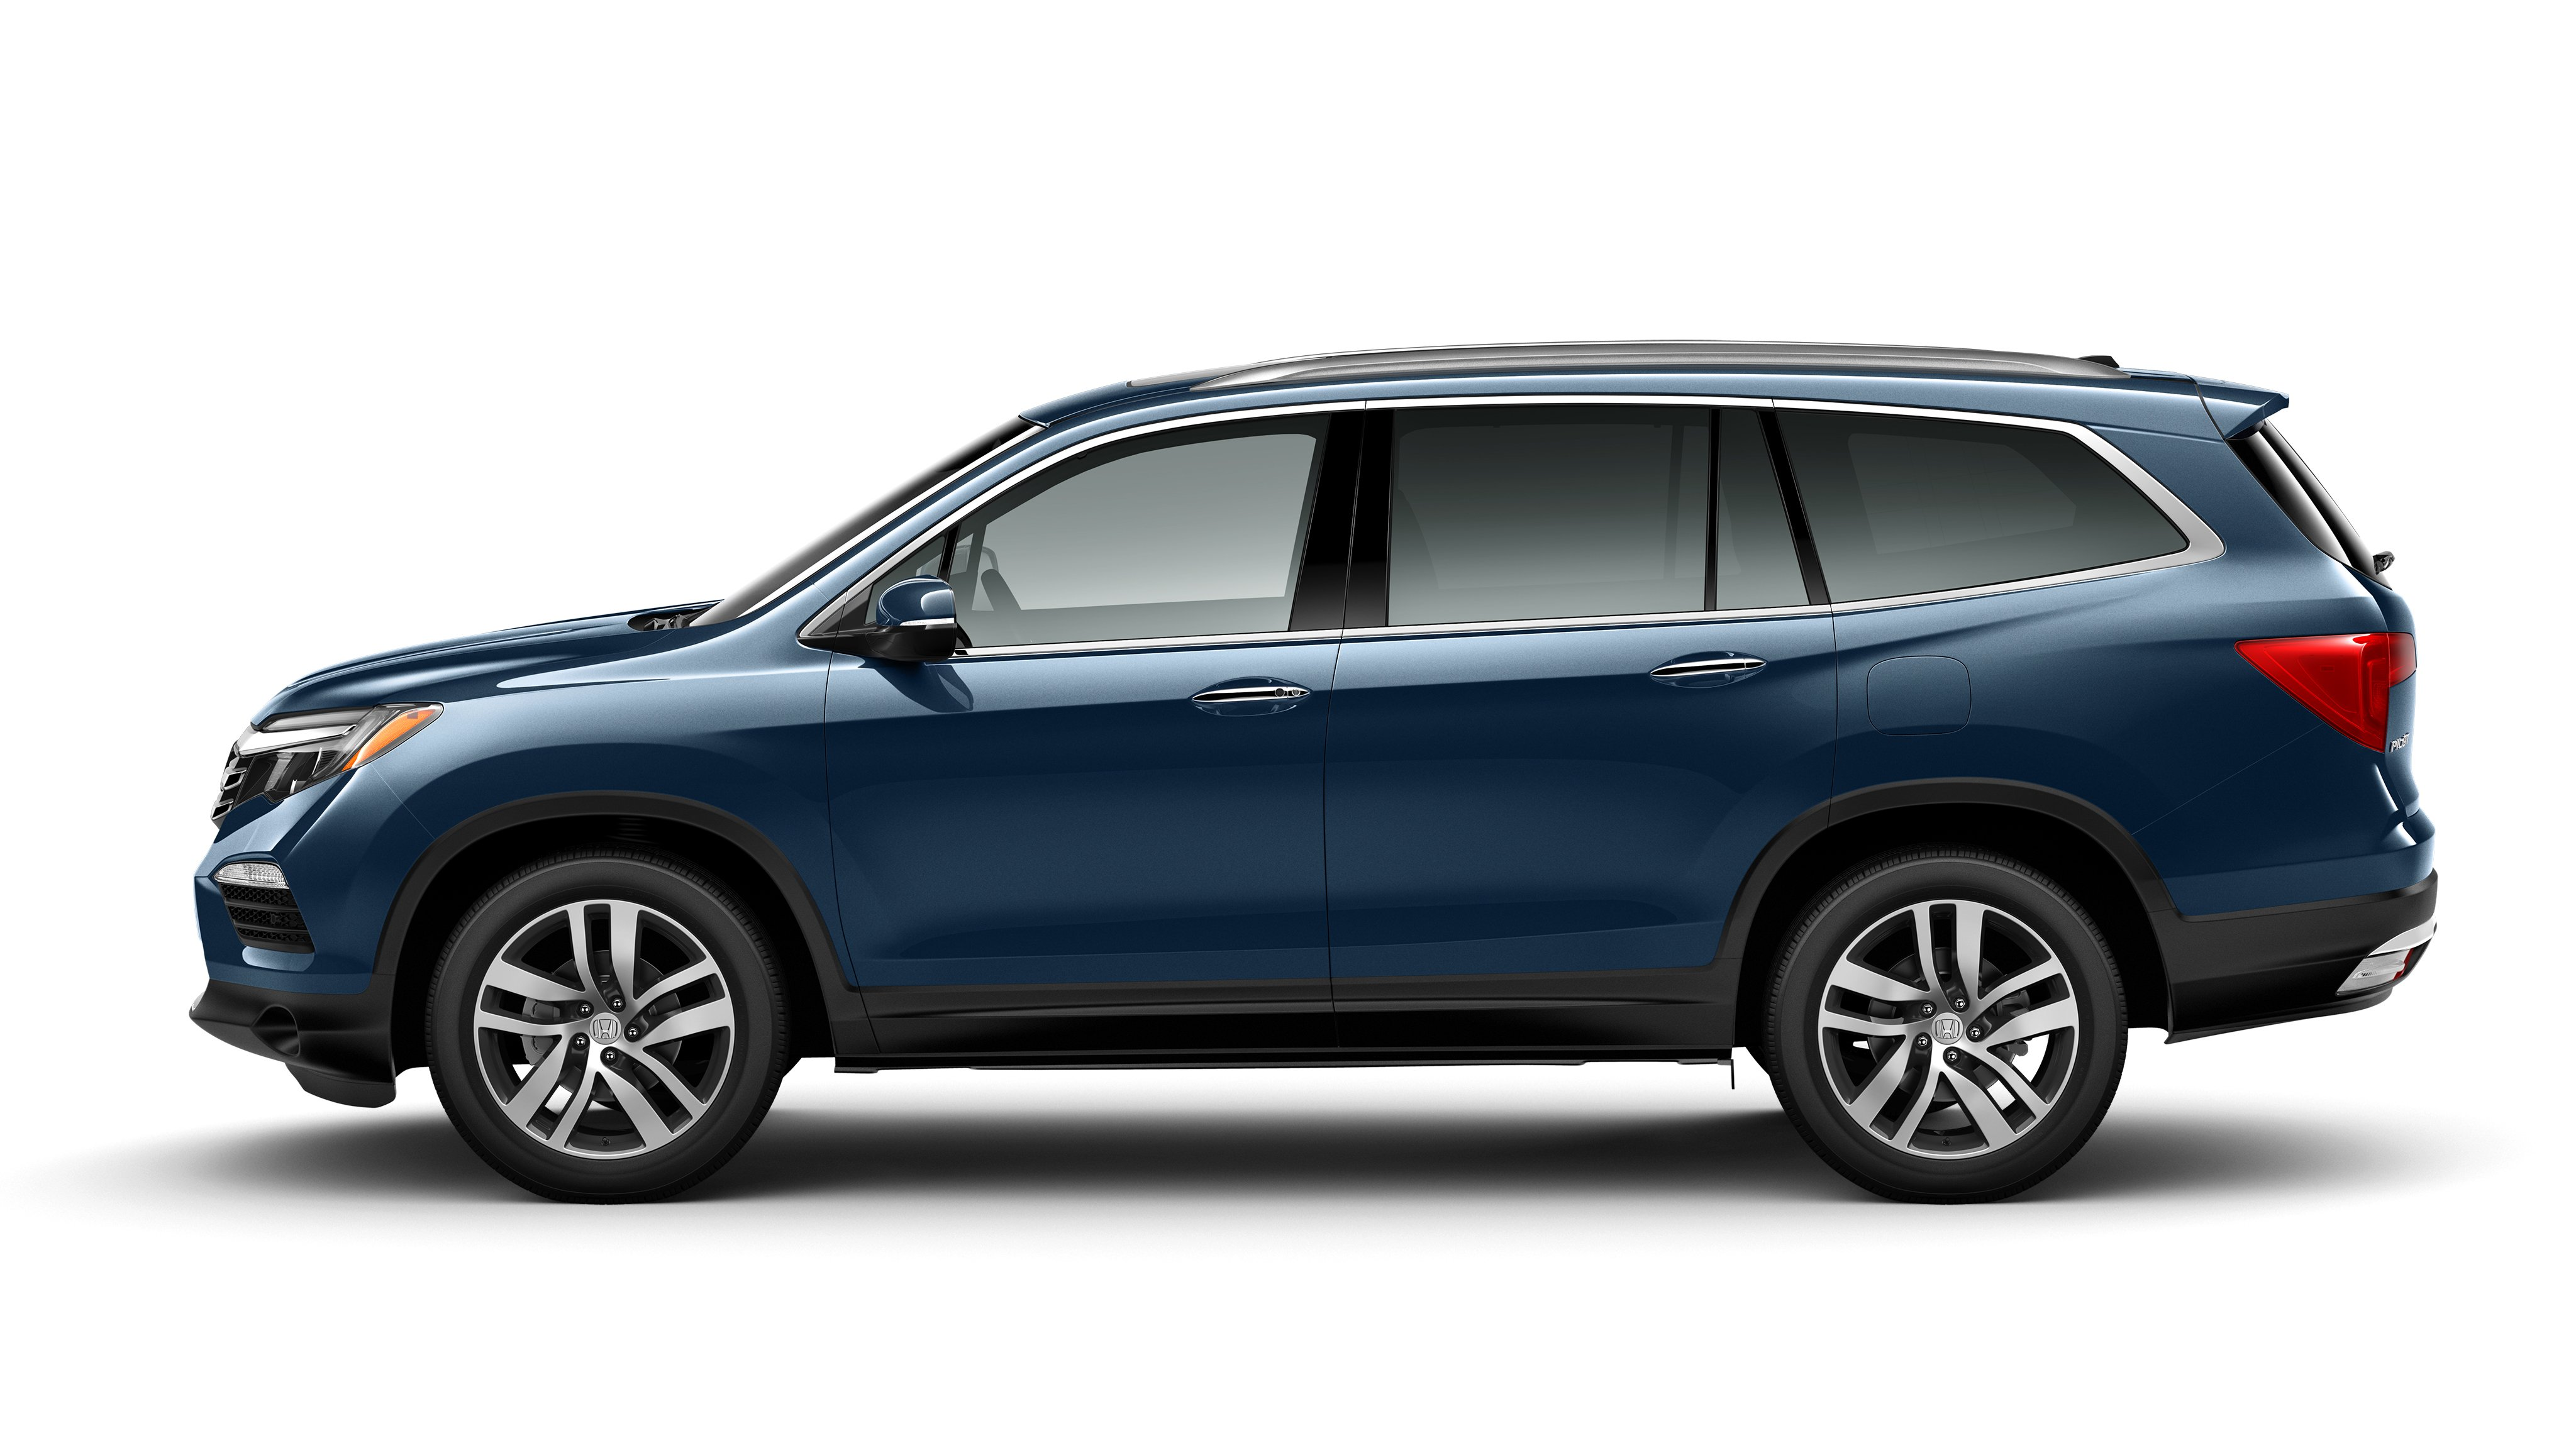 Honda Pilot hd photo